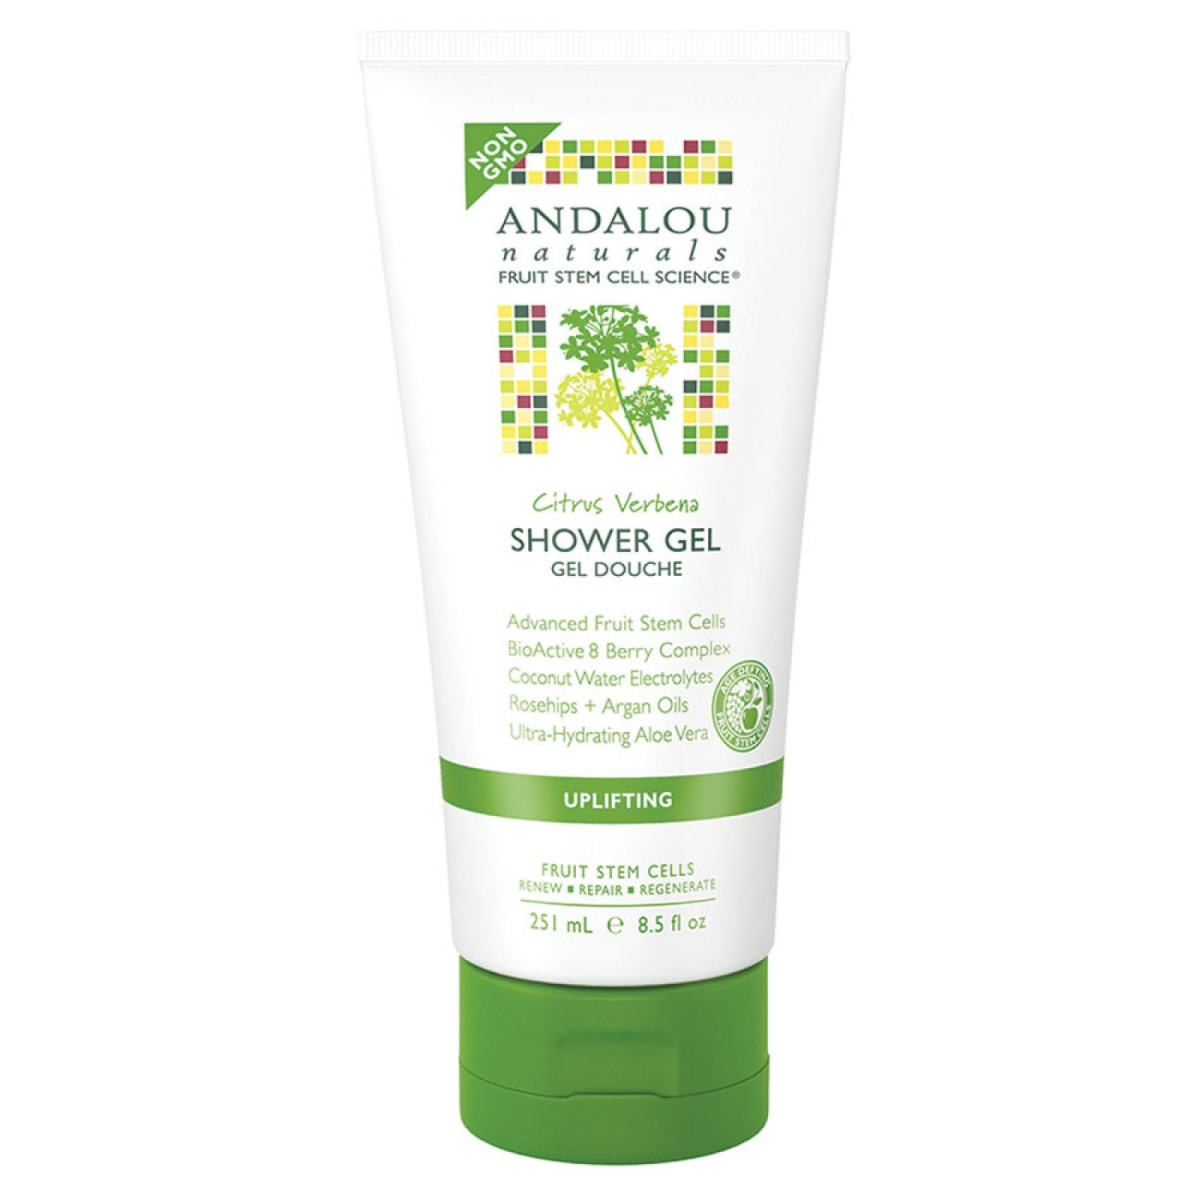 Frontier 228558 8.5 fl oz Andalou Naturals Uplifting Citrus Verbena Shower Gel